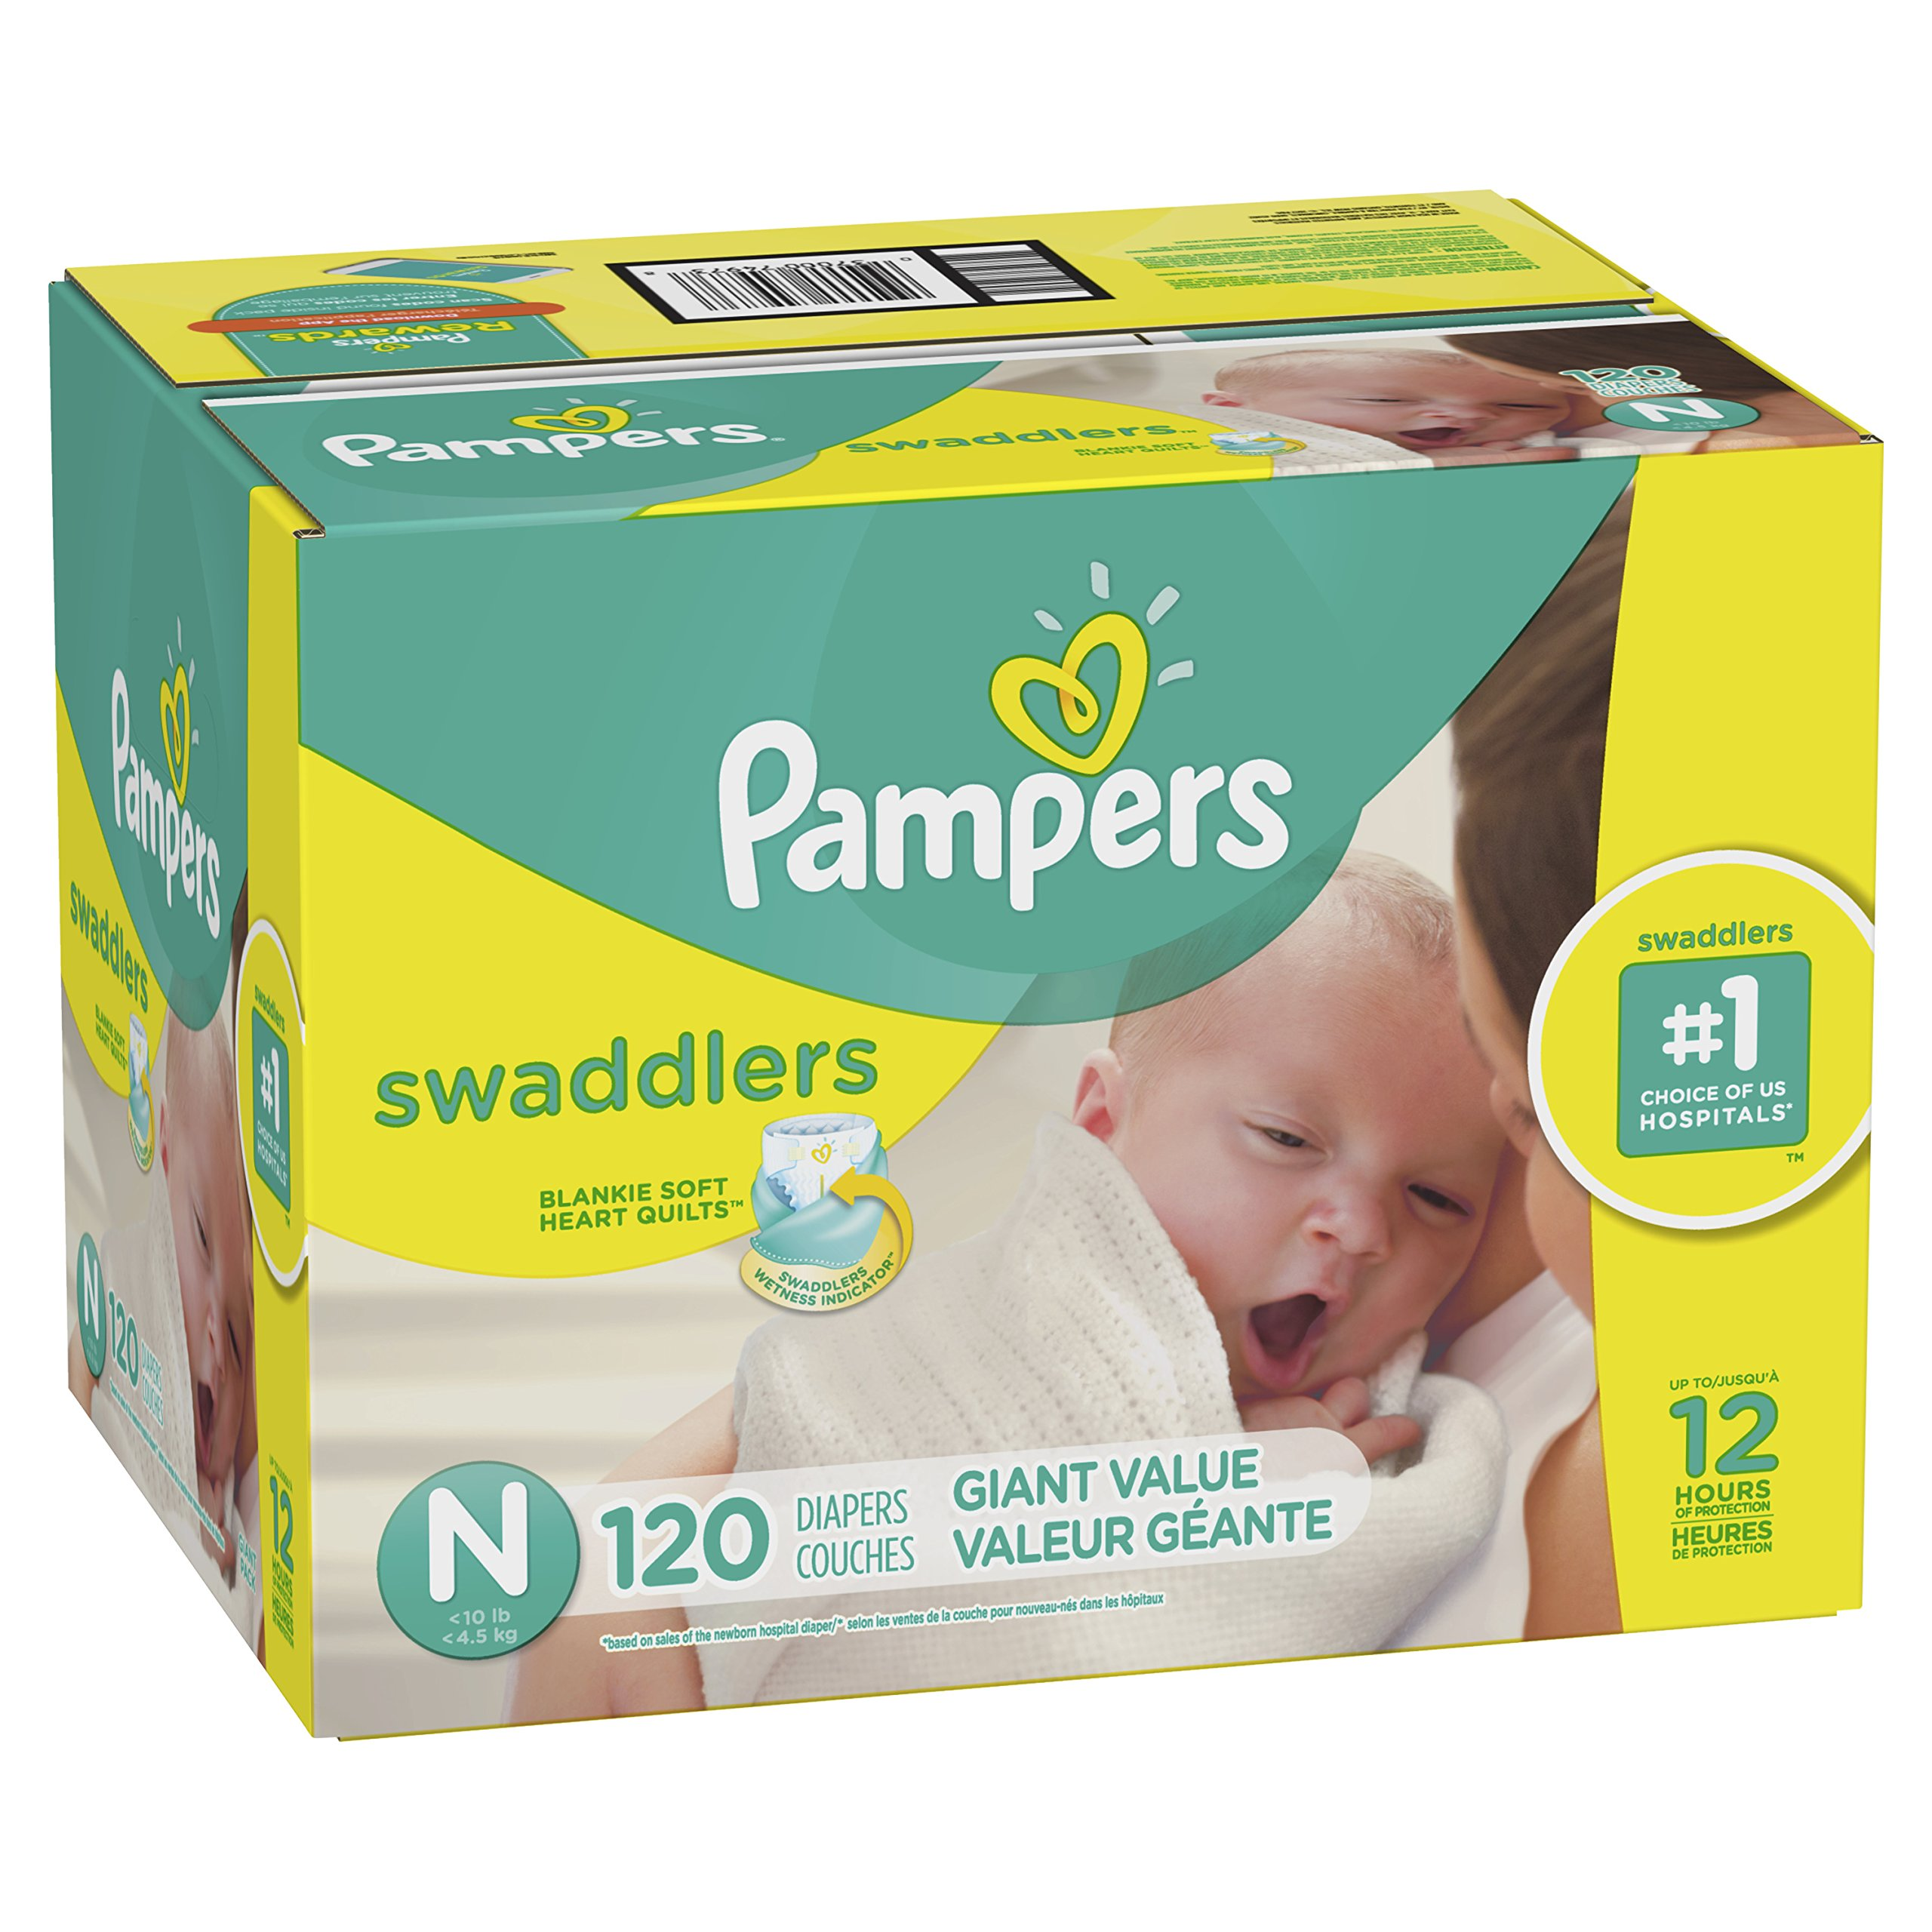 Pampers Swaddlers Disposable Diapers Size Newborn, 120 Count by Pampers (Image #1)